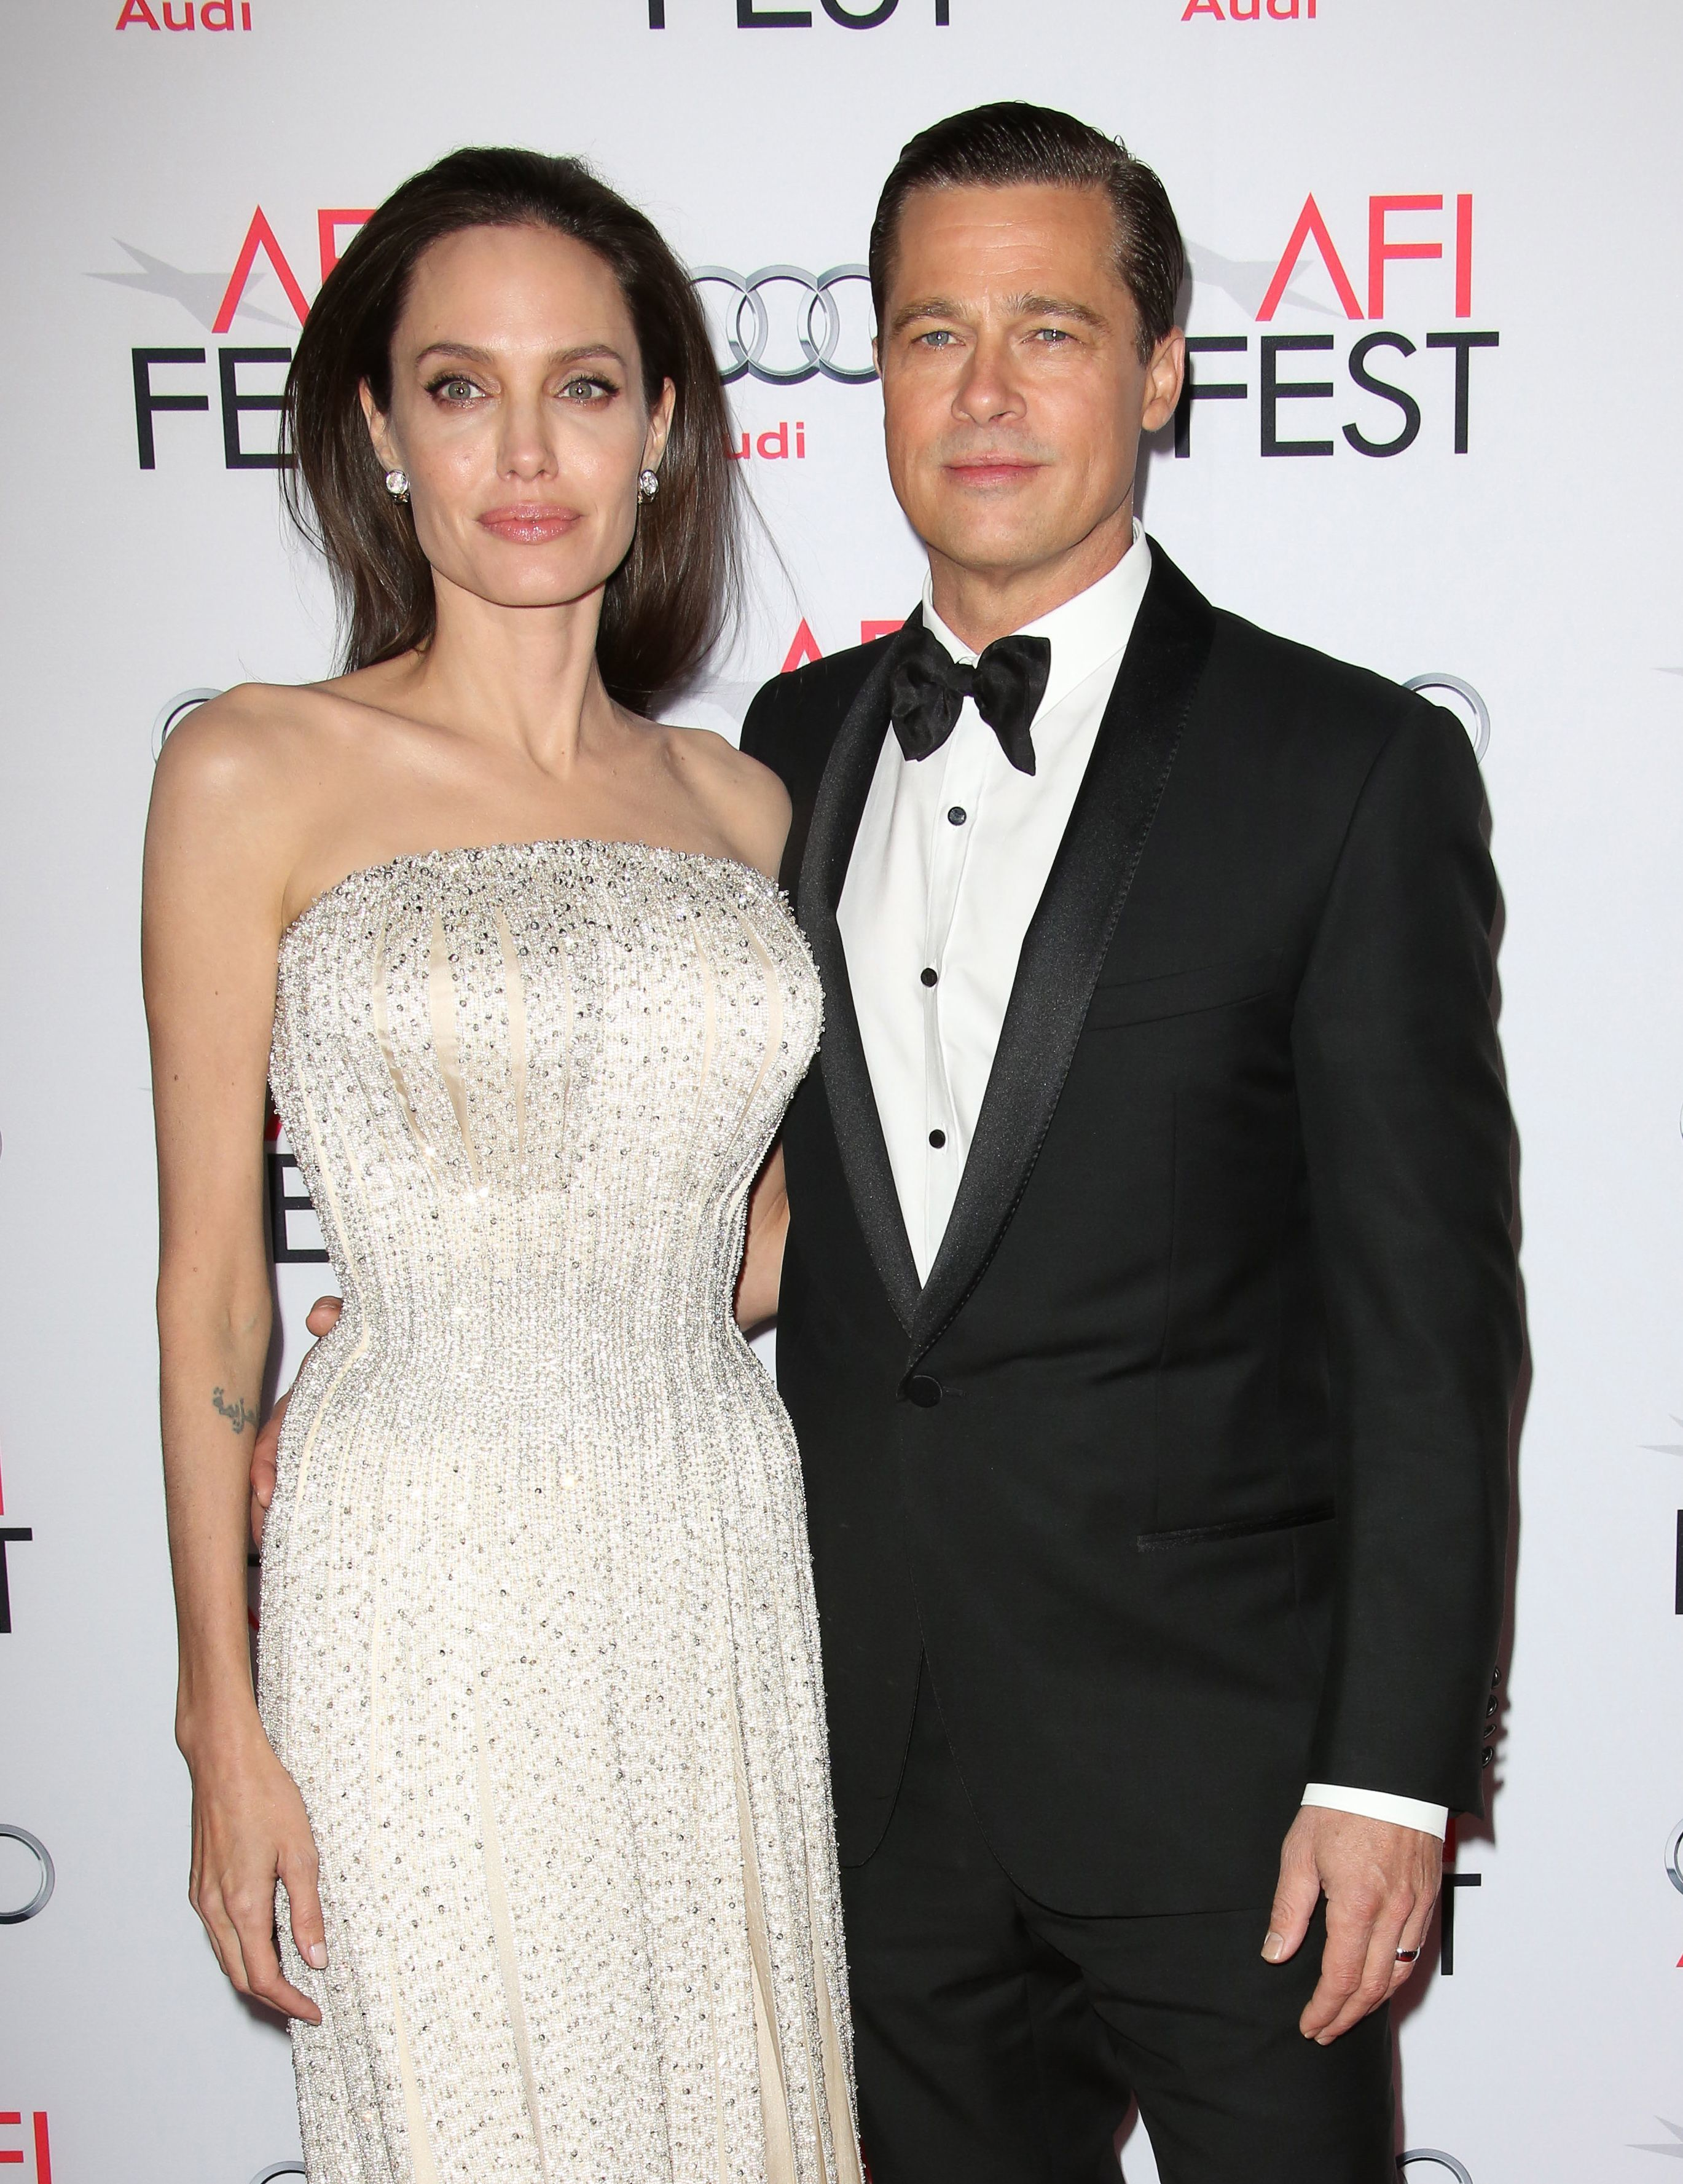 Angelina Jolie's new lawyer wants a divorce decree for Angie and Brad